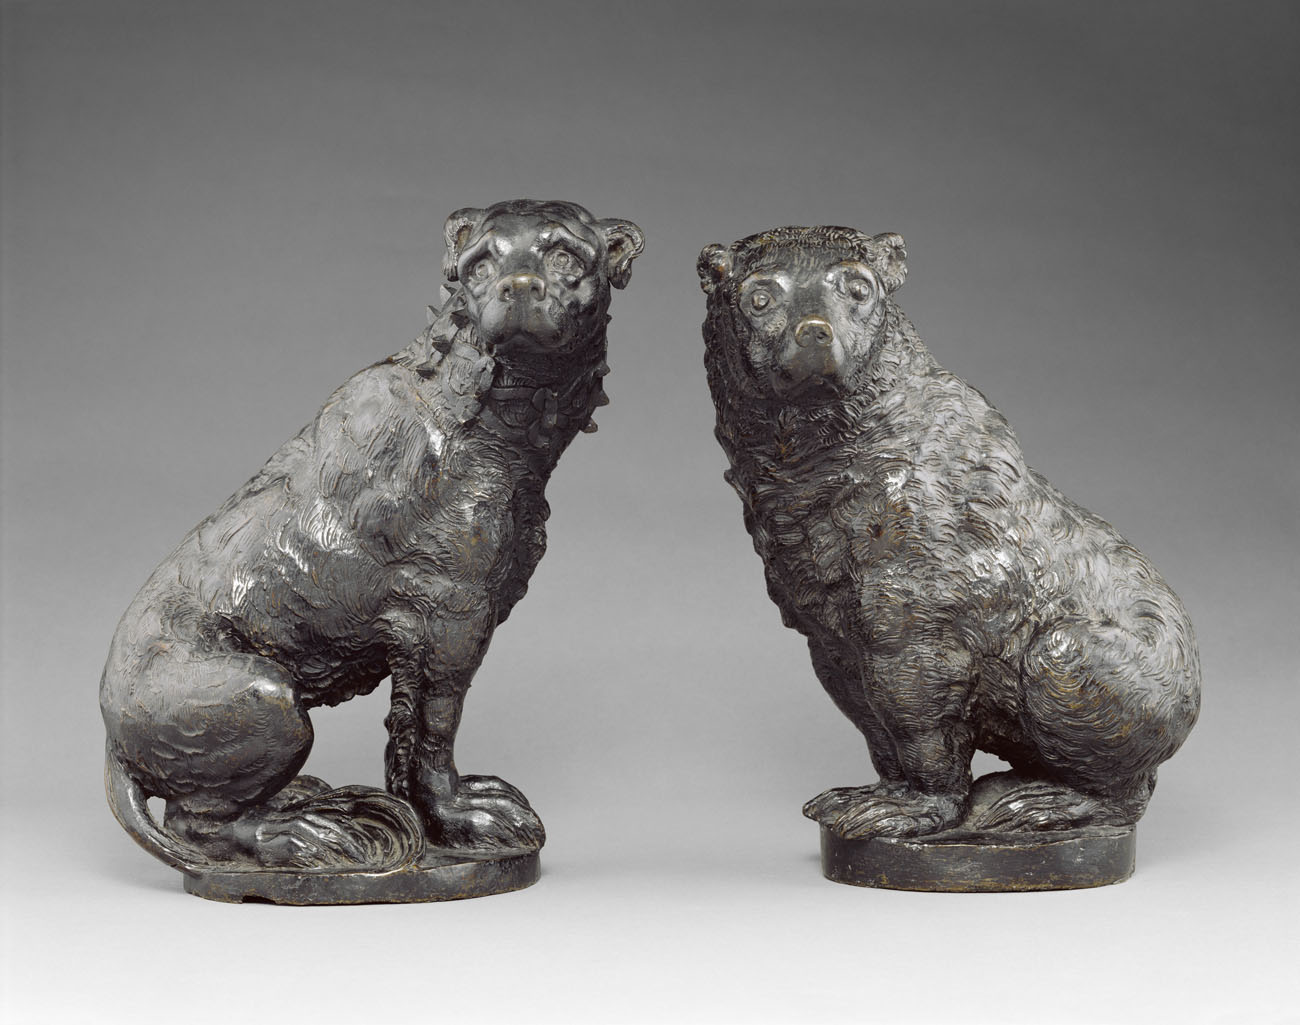 Dog and Bear, about 1600, unknown, Italian. Bronze; left: 12 x 8 5/8 x 7 7/8 in., right: 11 5/8 x 8 7/8 x 9 1/2 in. The J. Paul Getty Museum, 86.SB.5